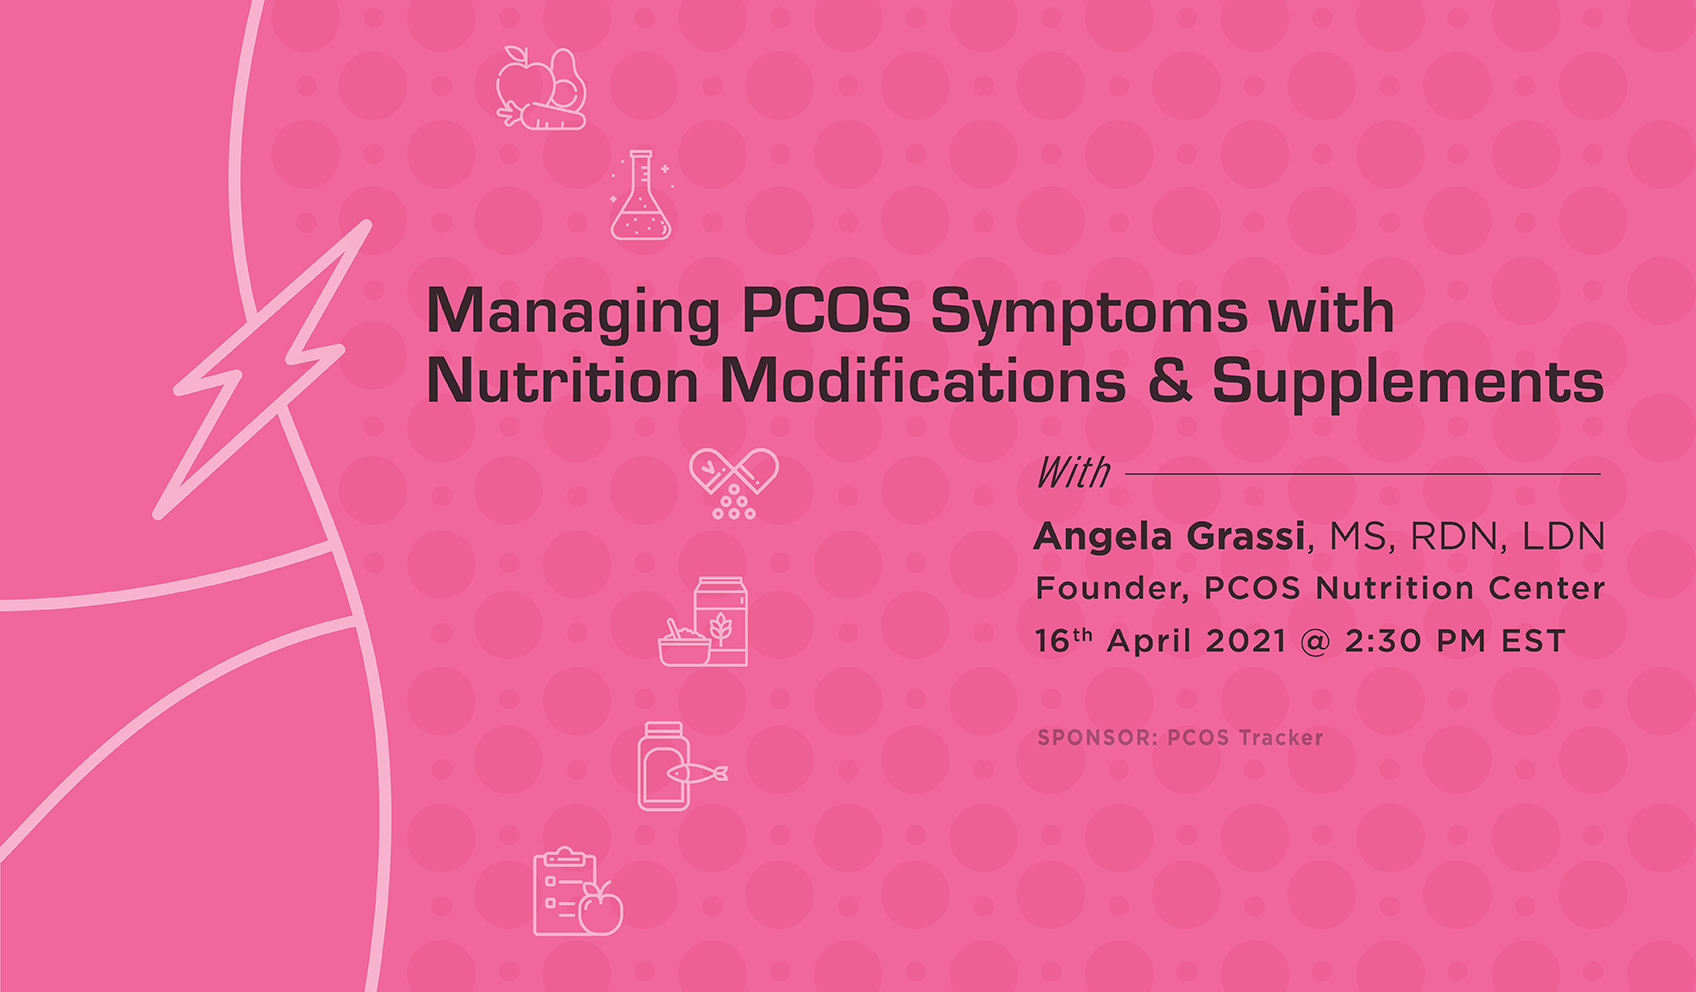 Managing PCOS Symptoms with Nutrition Modifications & Supplements